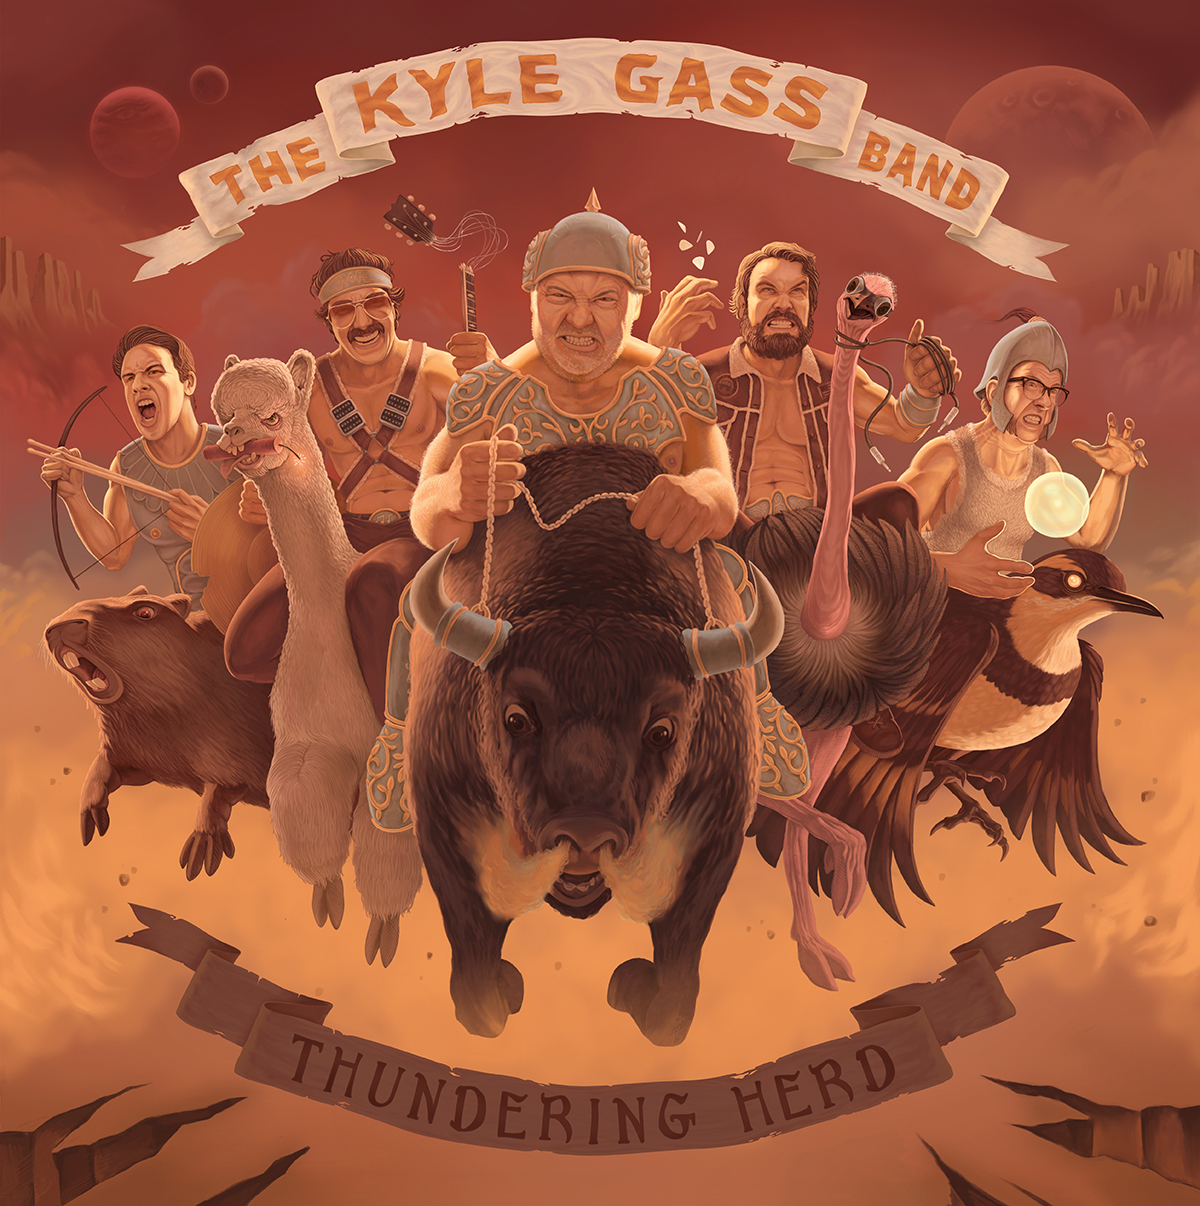 Kyle Gass Band, Thundering Herd LP - 2016